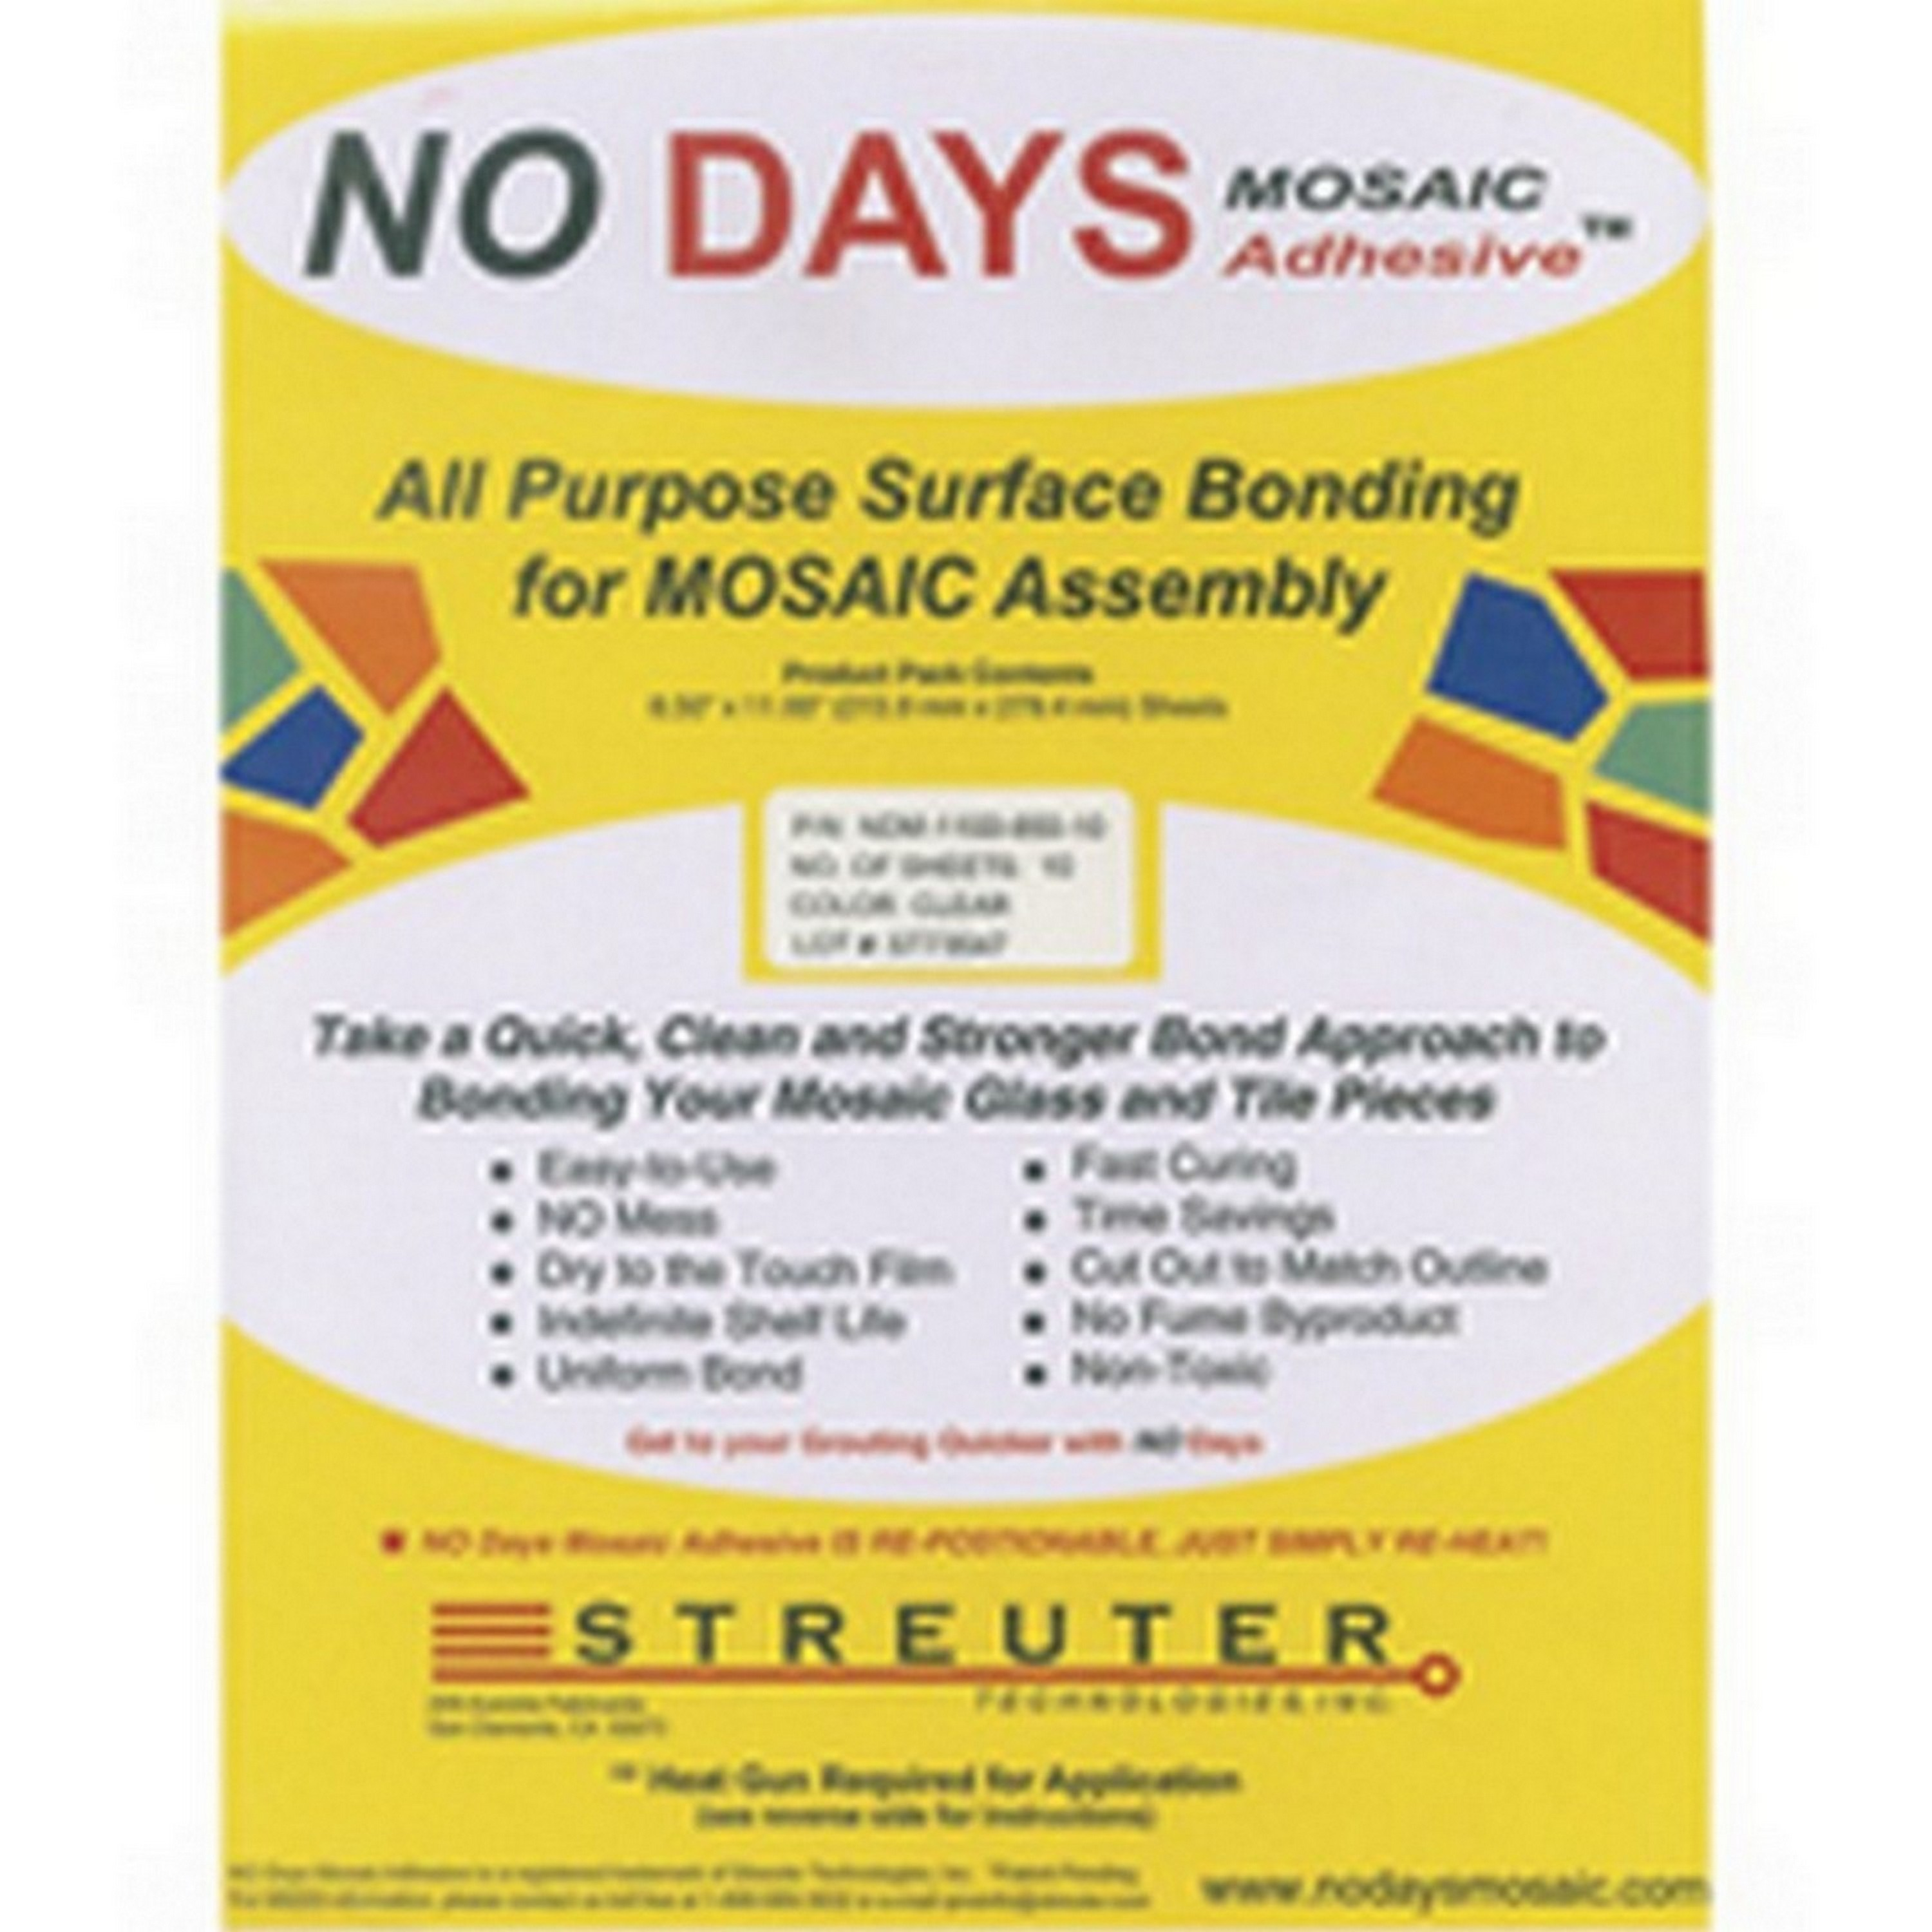 Mosaic Laminating Products